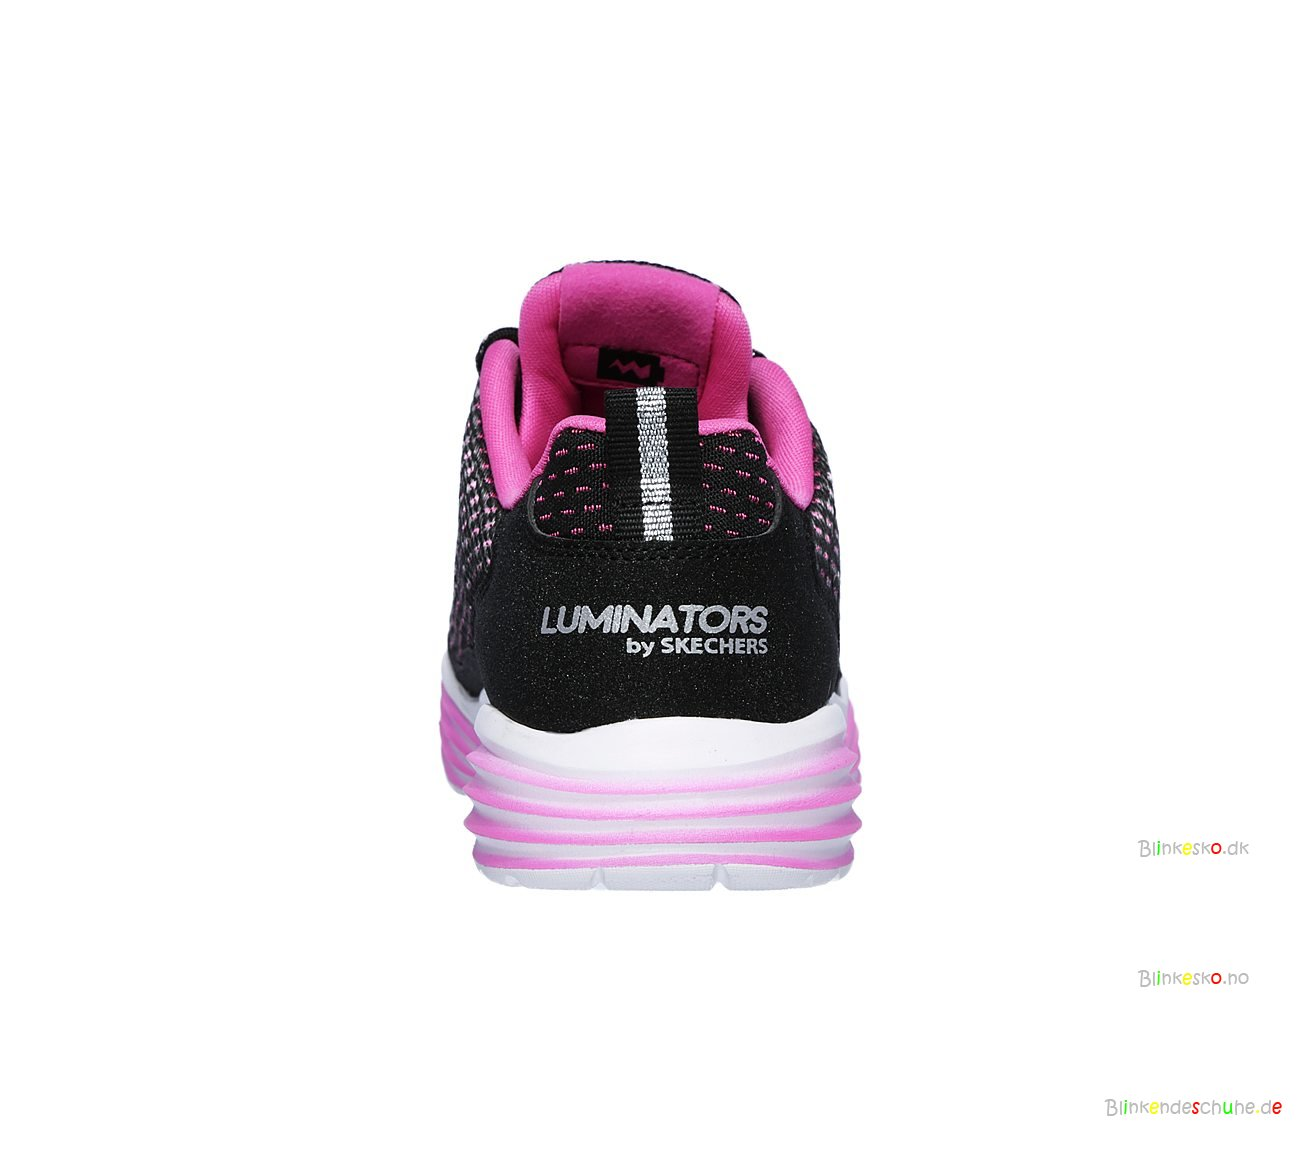 SKECHERS Luminators Luxe 20100 Led Schuhe BlackPink